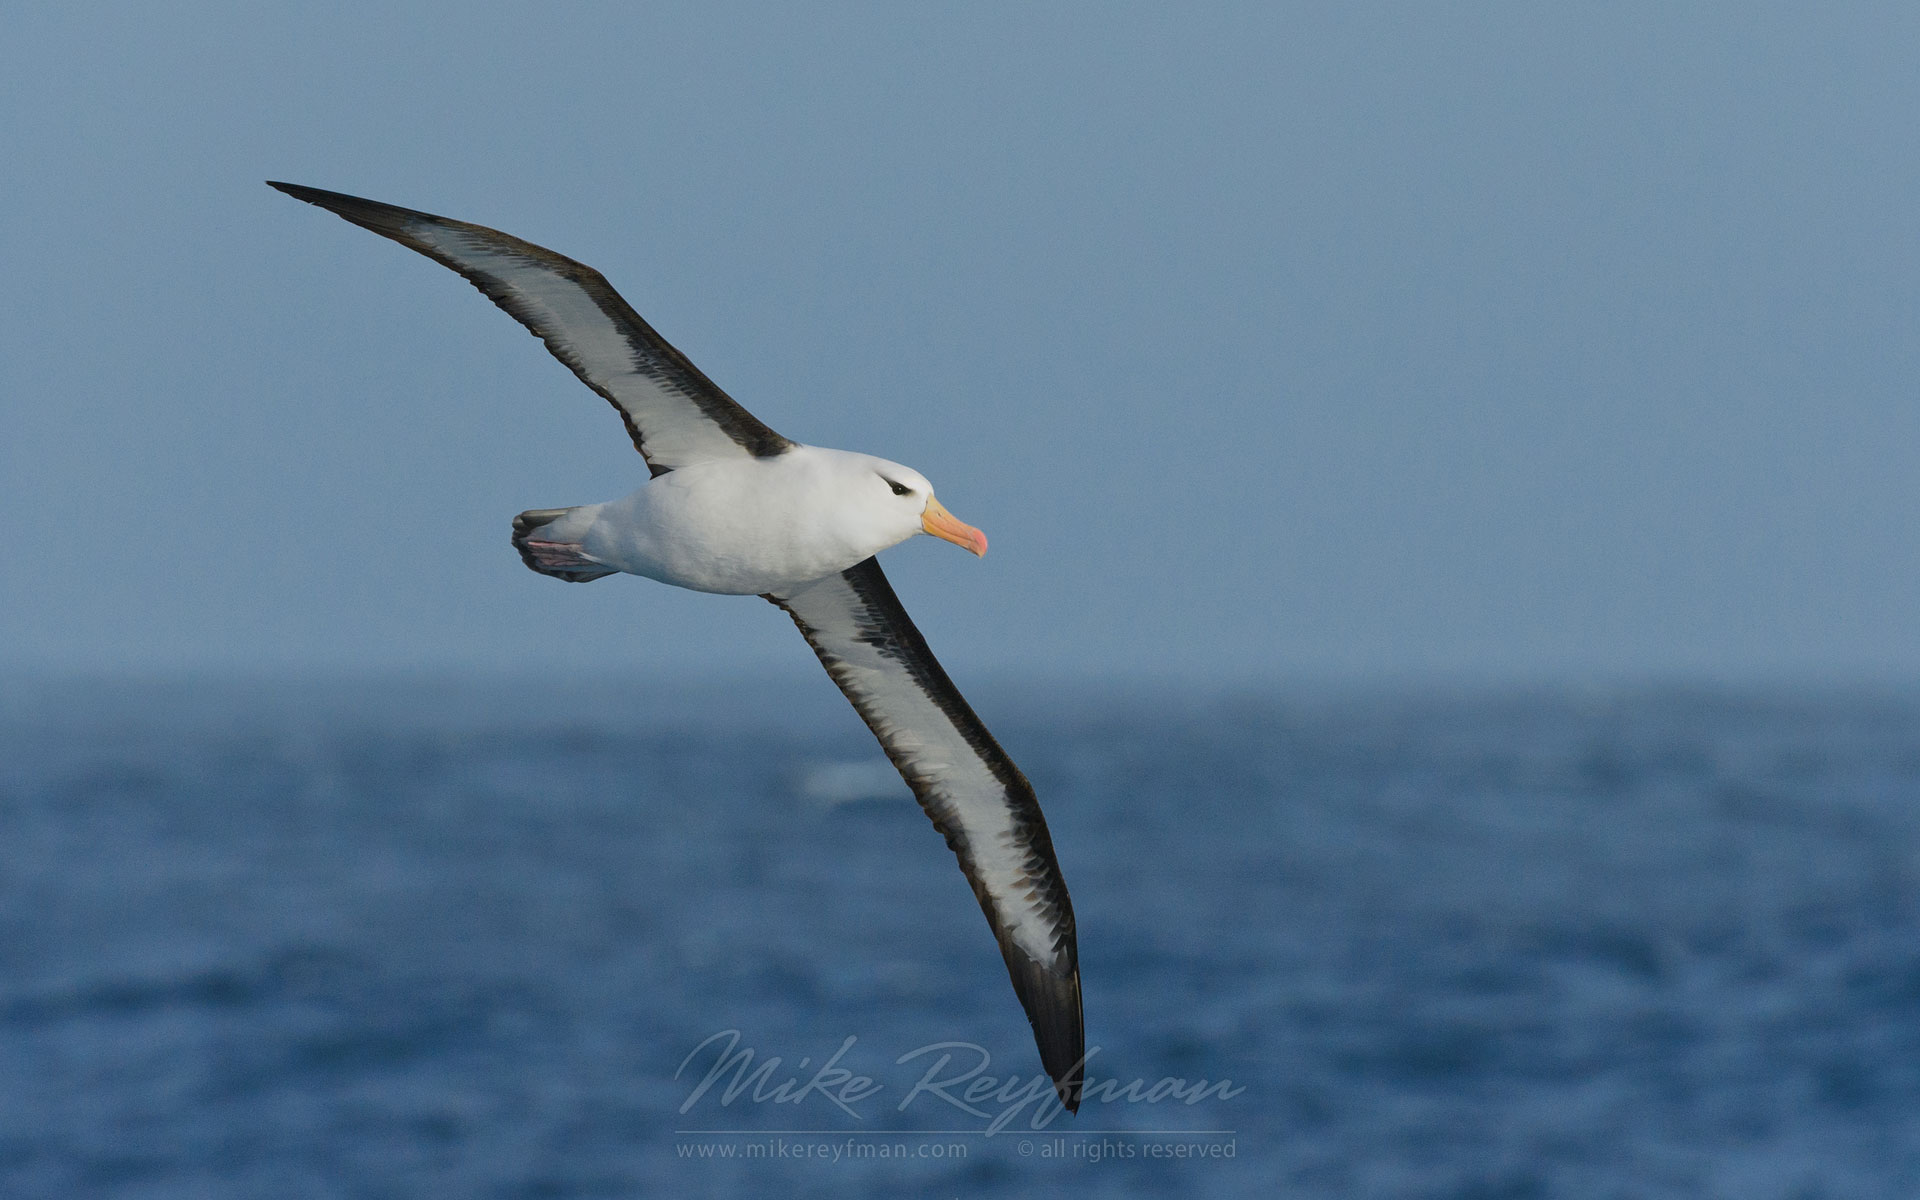 Black-browed Albatross (Thalassarche melanophrys) in flight. - Albatrosses-Petrels-Landscapes-South-Georgia-Sub-Antarctic - Mike Reyfman Photography